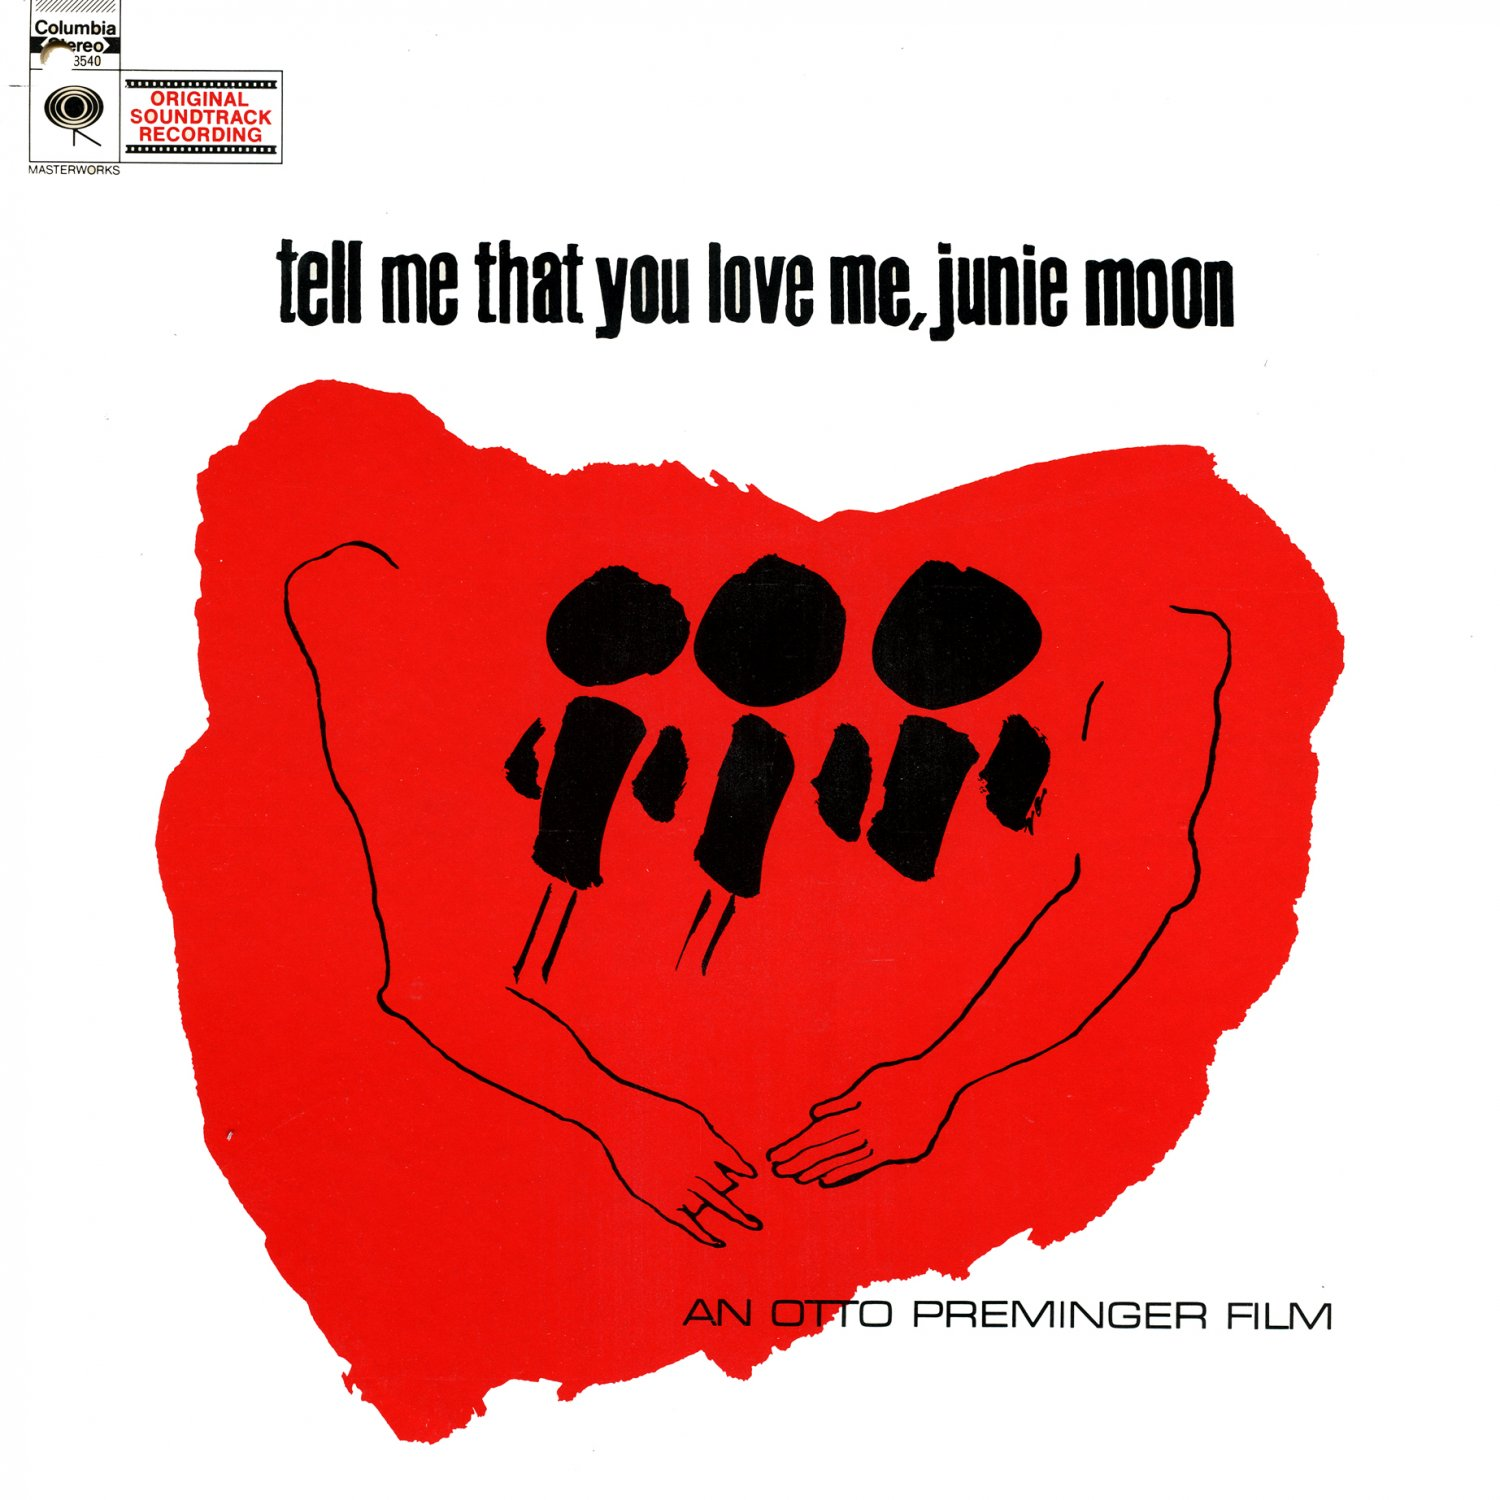 Tell Me That You Love Me, Junie Moon - Original Soundtrack, Philip Springer OST LP/CD